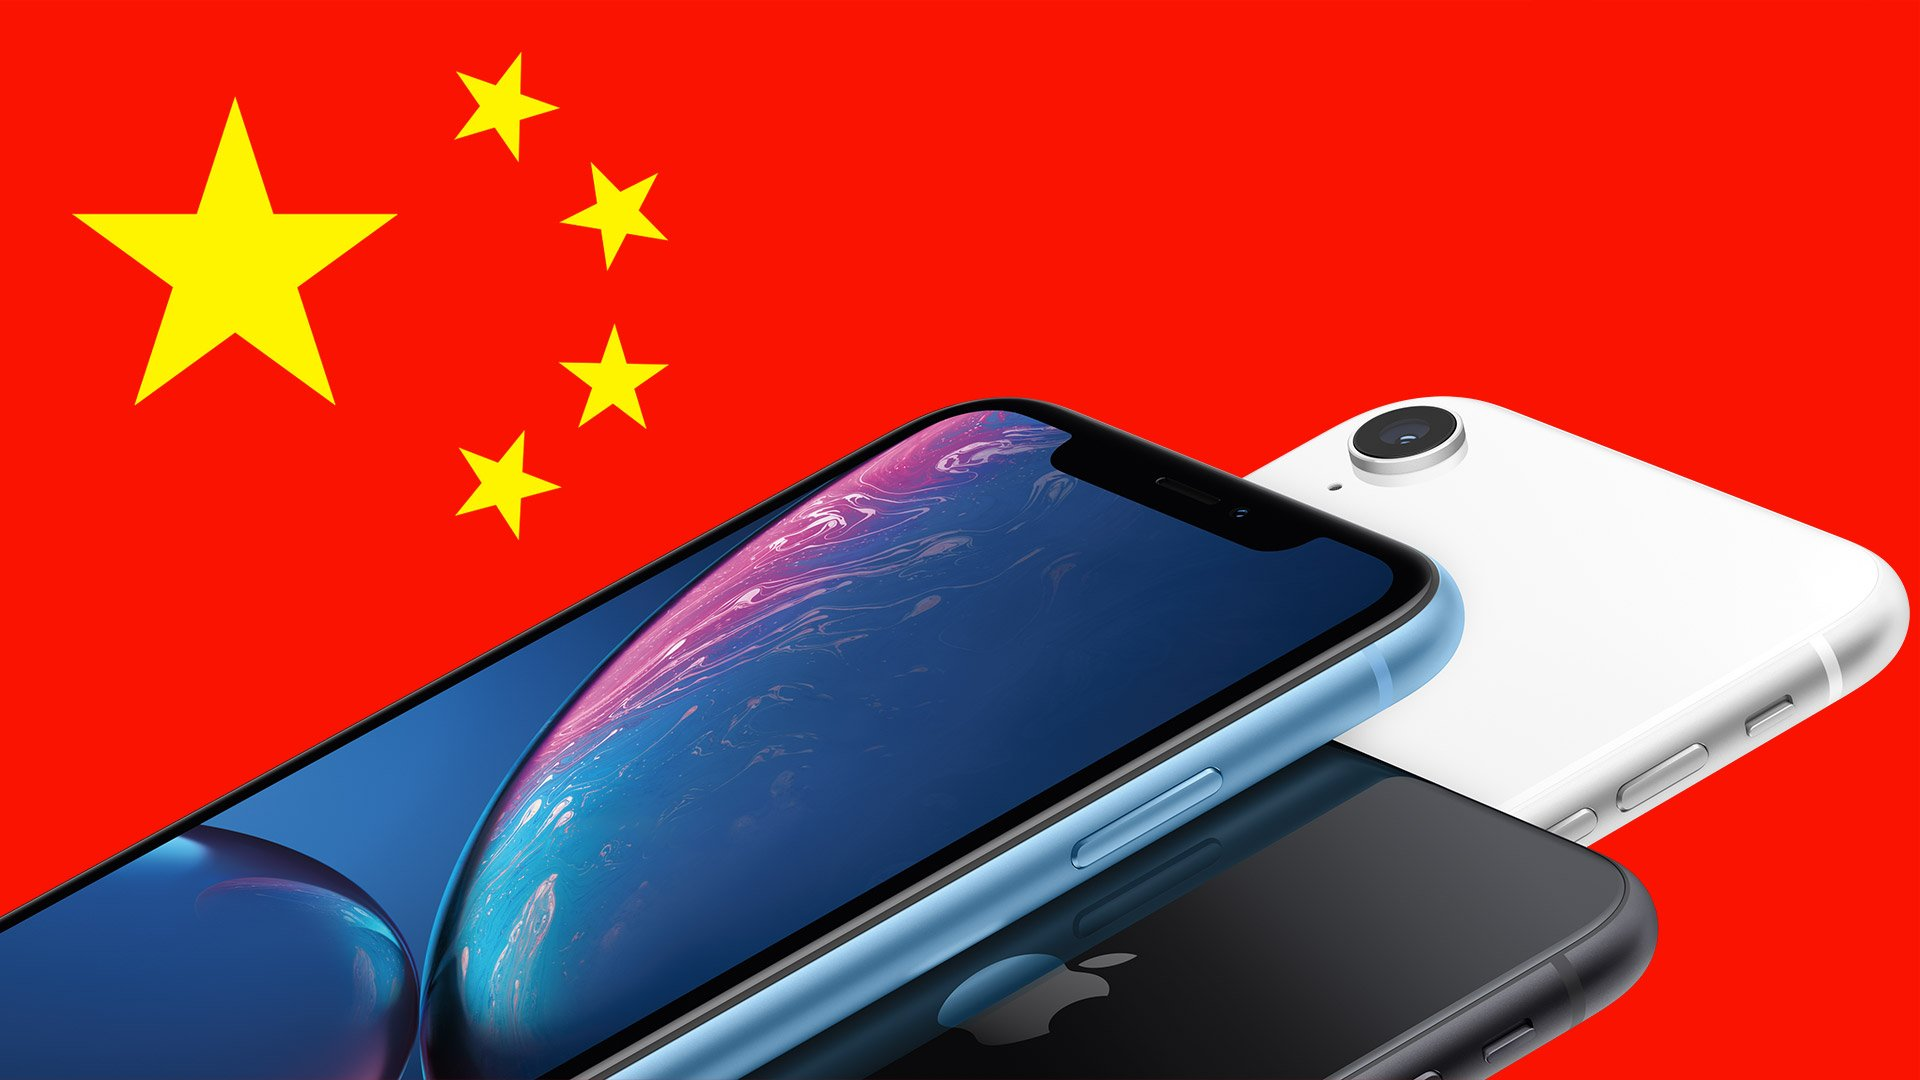 qualcomm, apple, apple vs qualcomm, apple china, iphone, iphone news, qualcomm apple patent